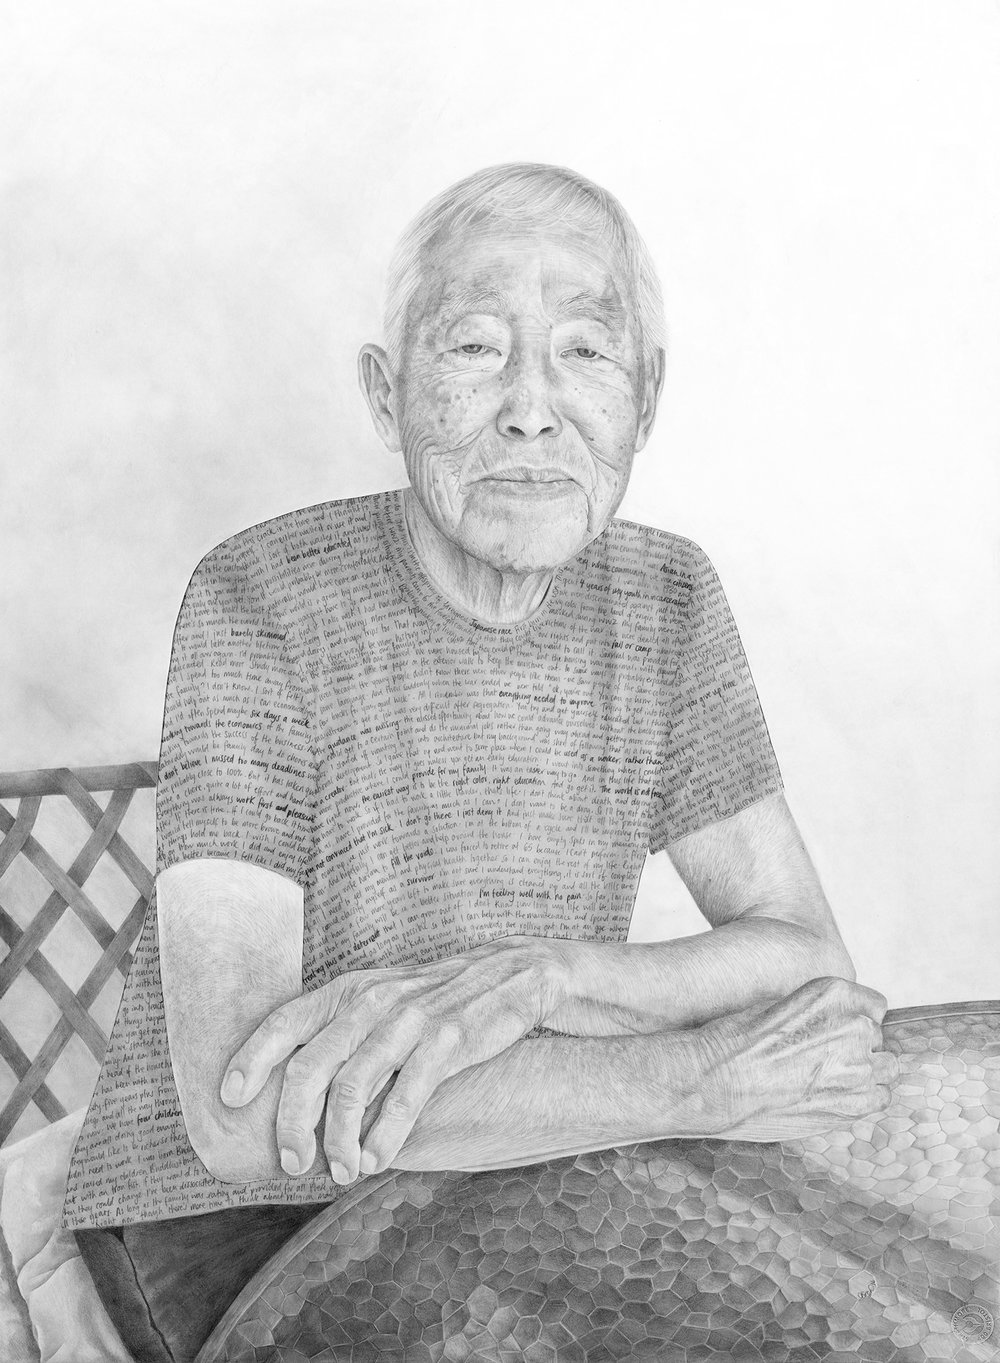 """Osamu - Pencil on drawing and tissue papers - 30"""" x 22"""" - 2016"""